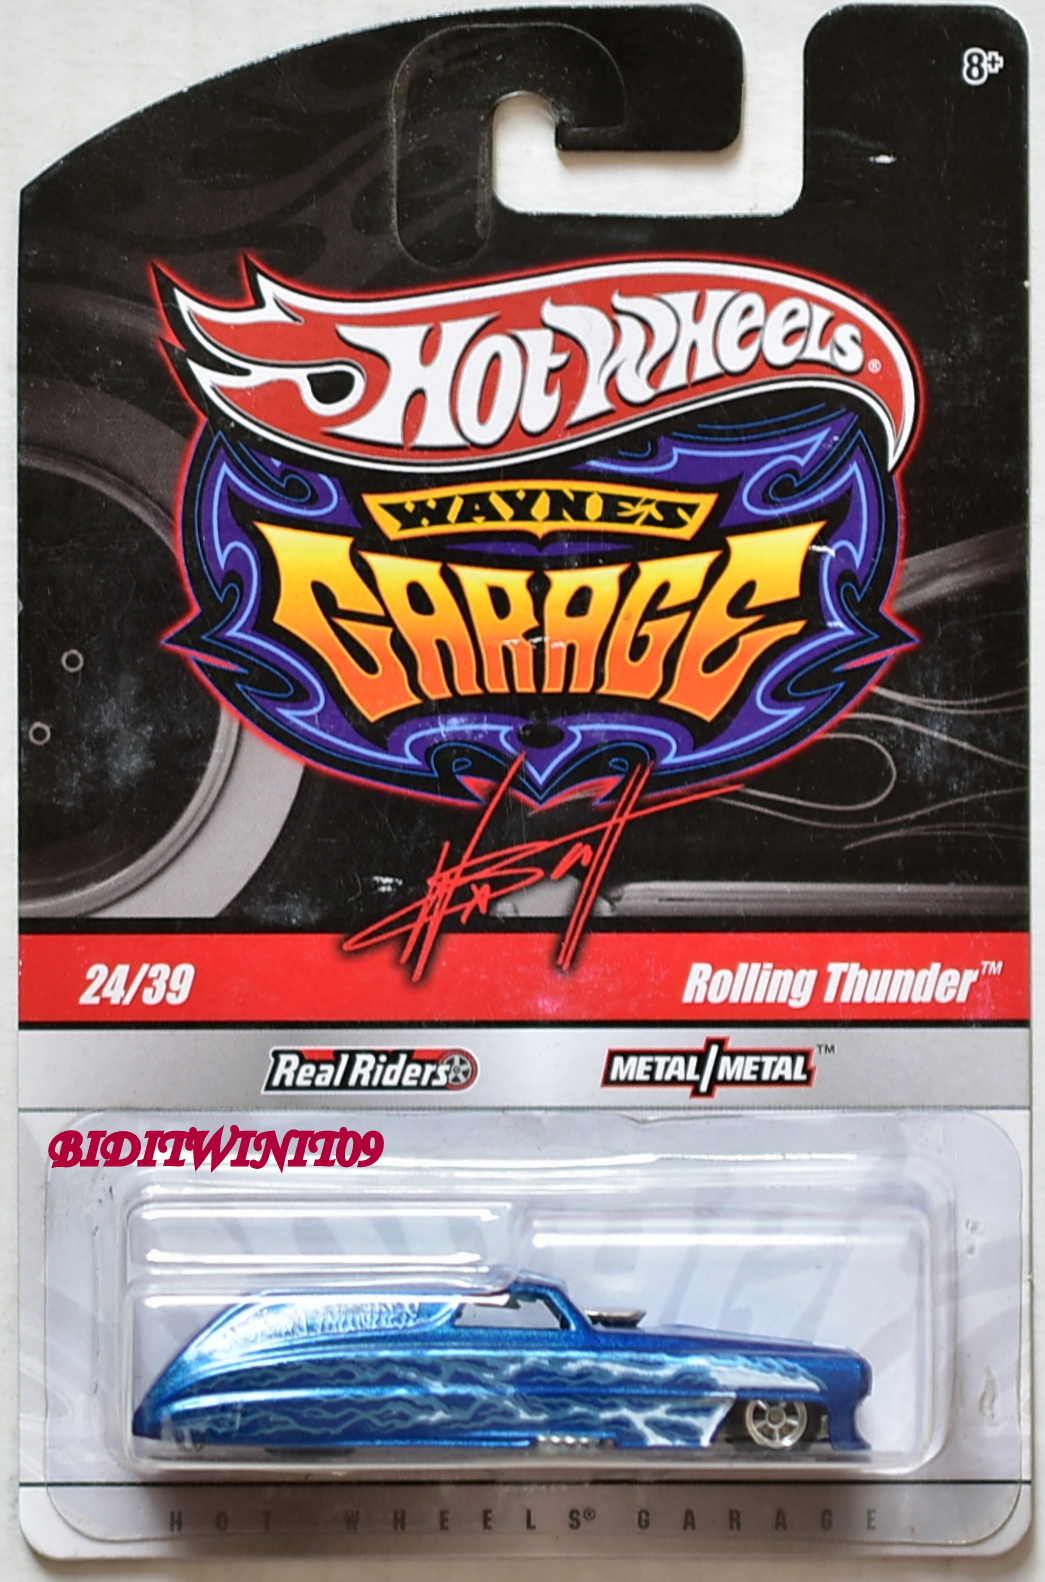 HOT WHEELS WAYNE'S GARAGE ROLLING THUNDER #24/39 BLUE E+